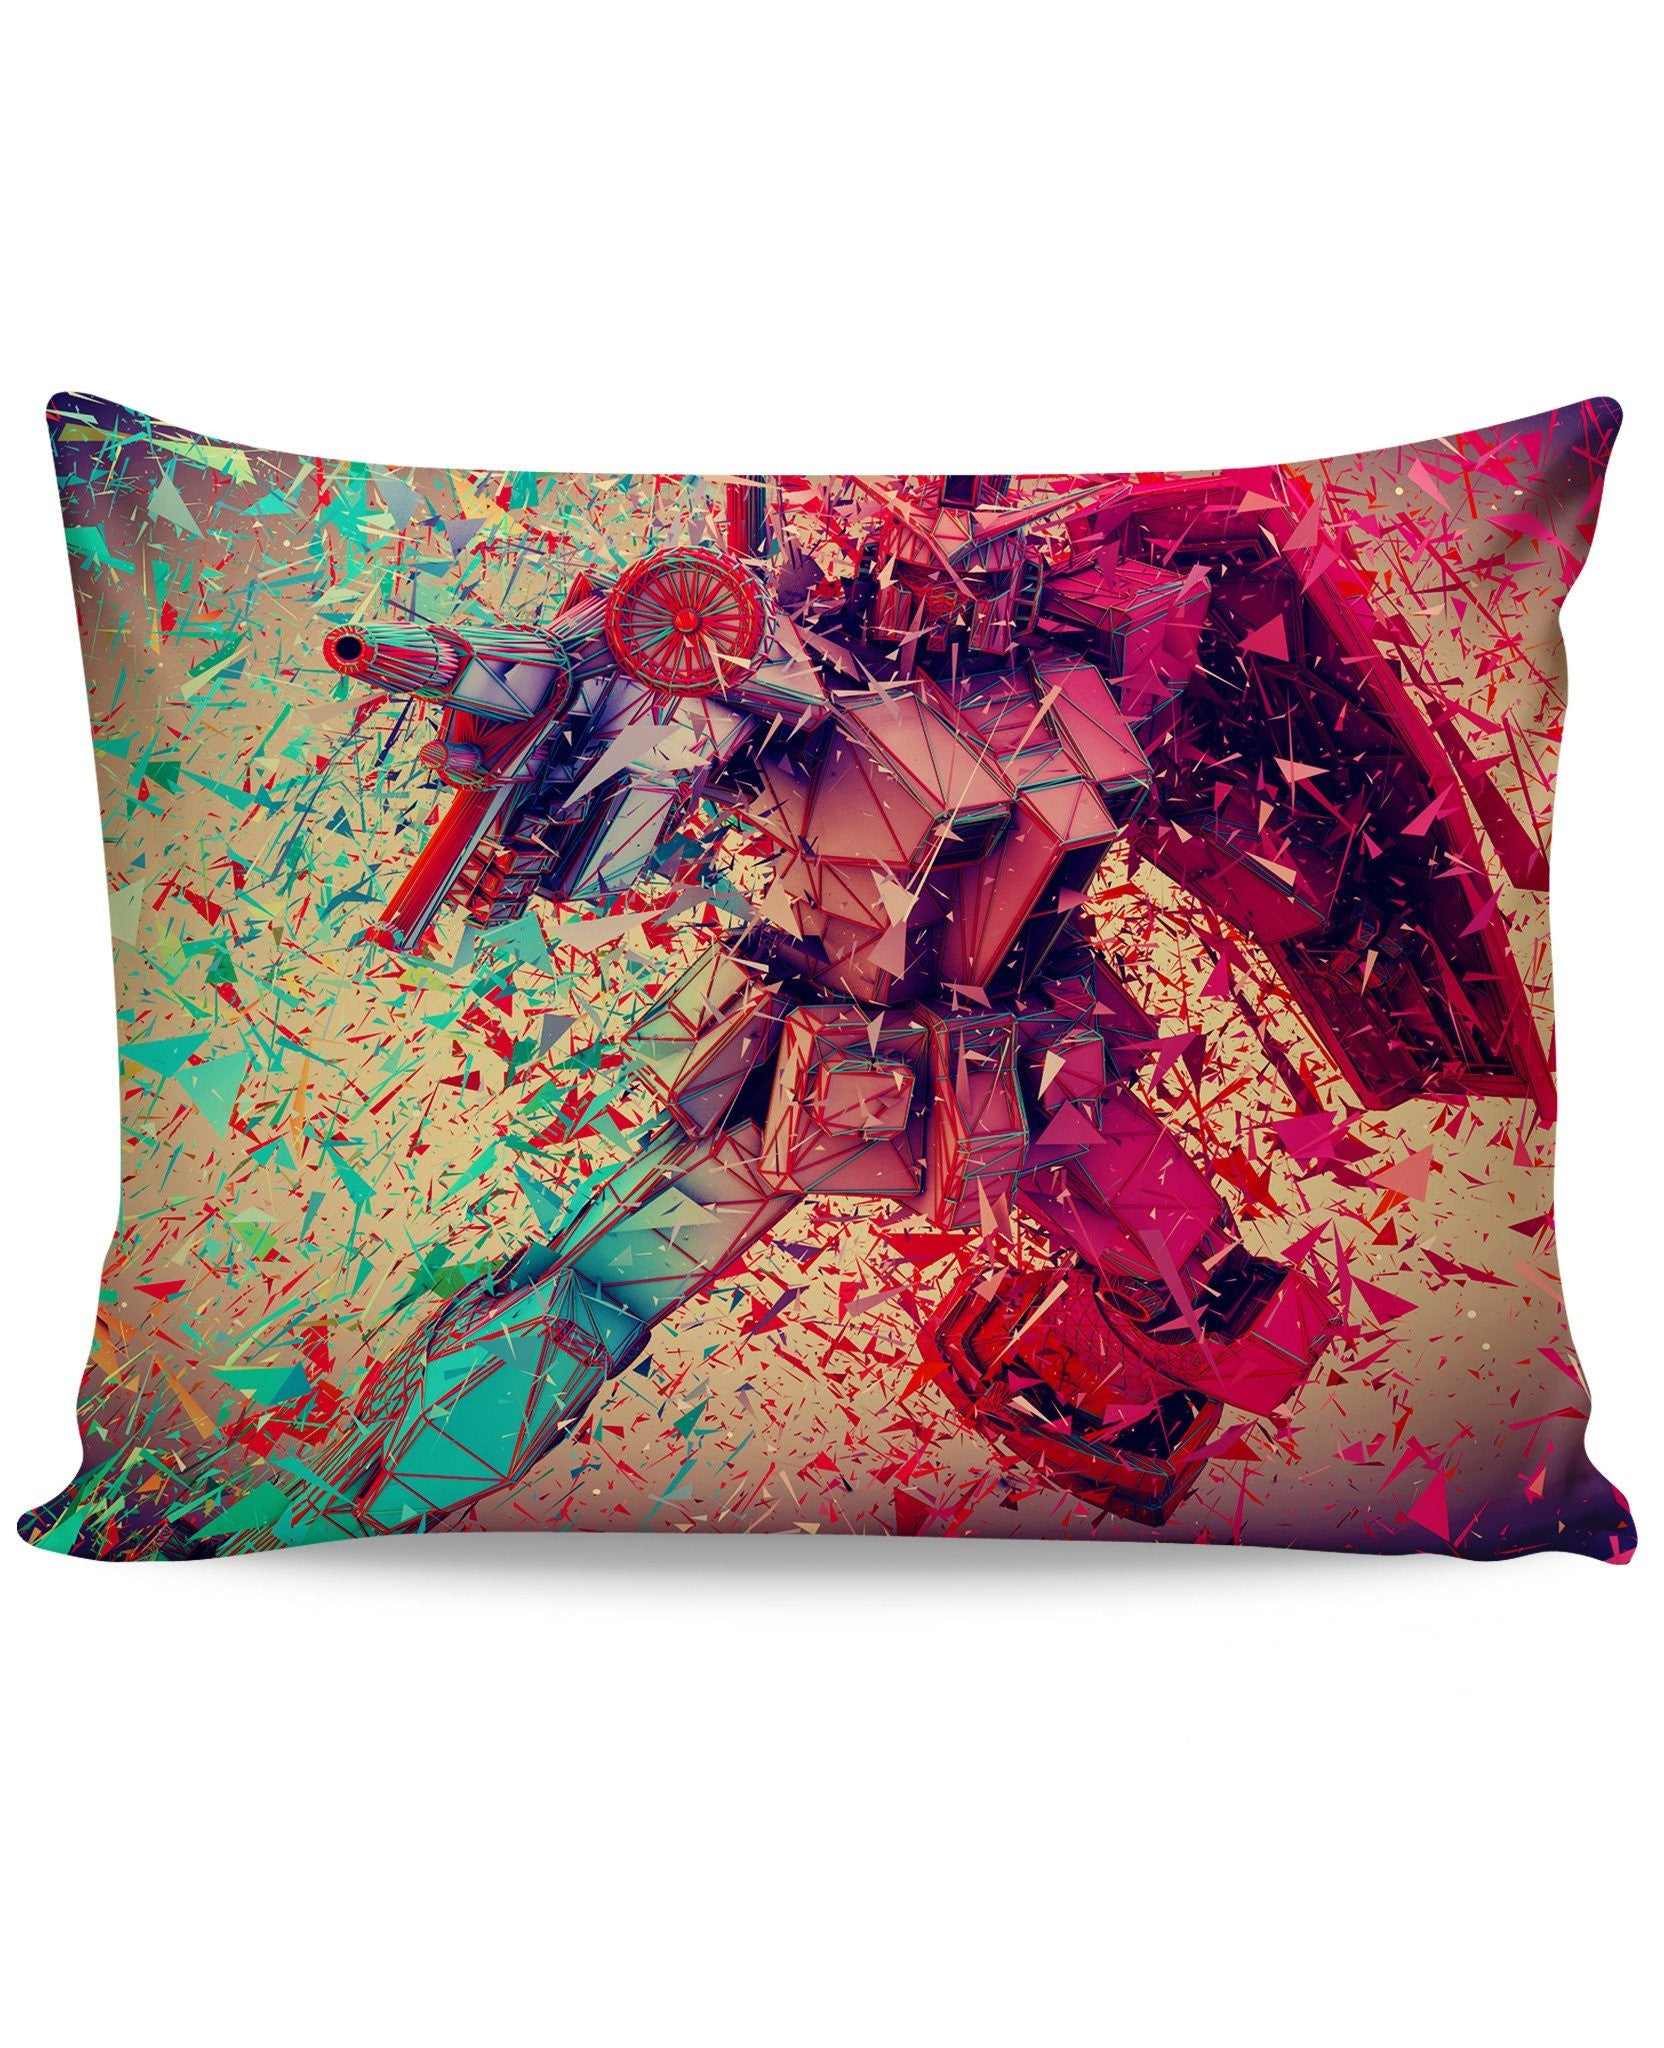 3D Transformers Pillow Case - TShirtsRUS.co